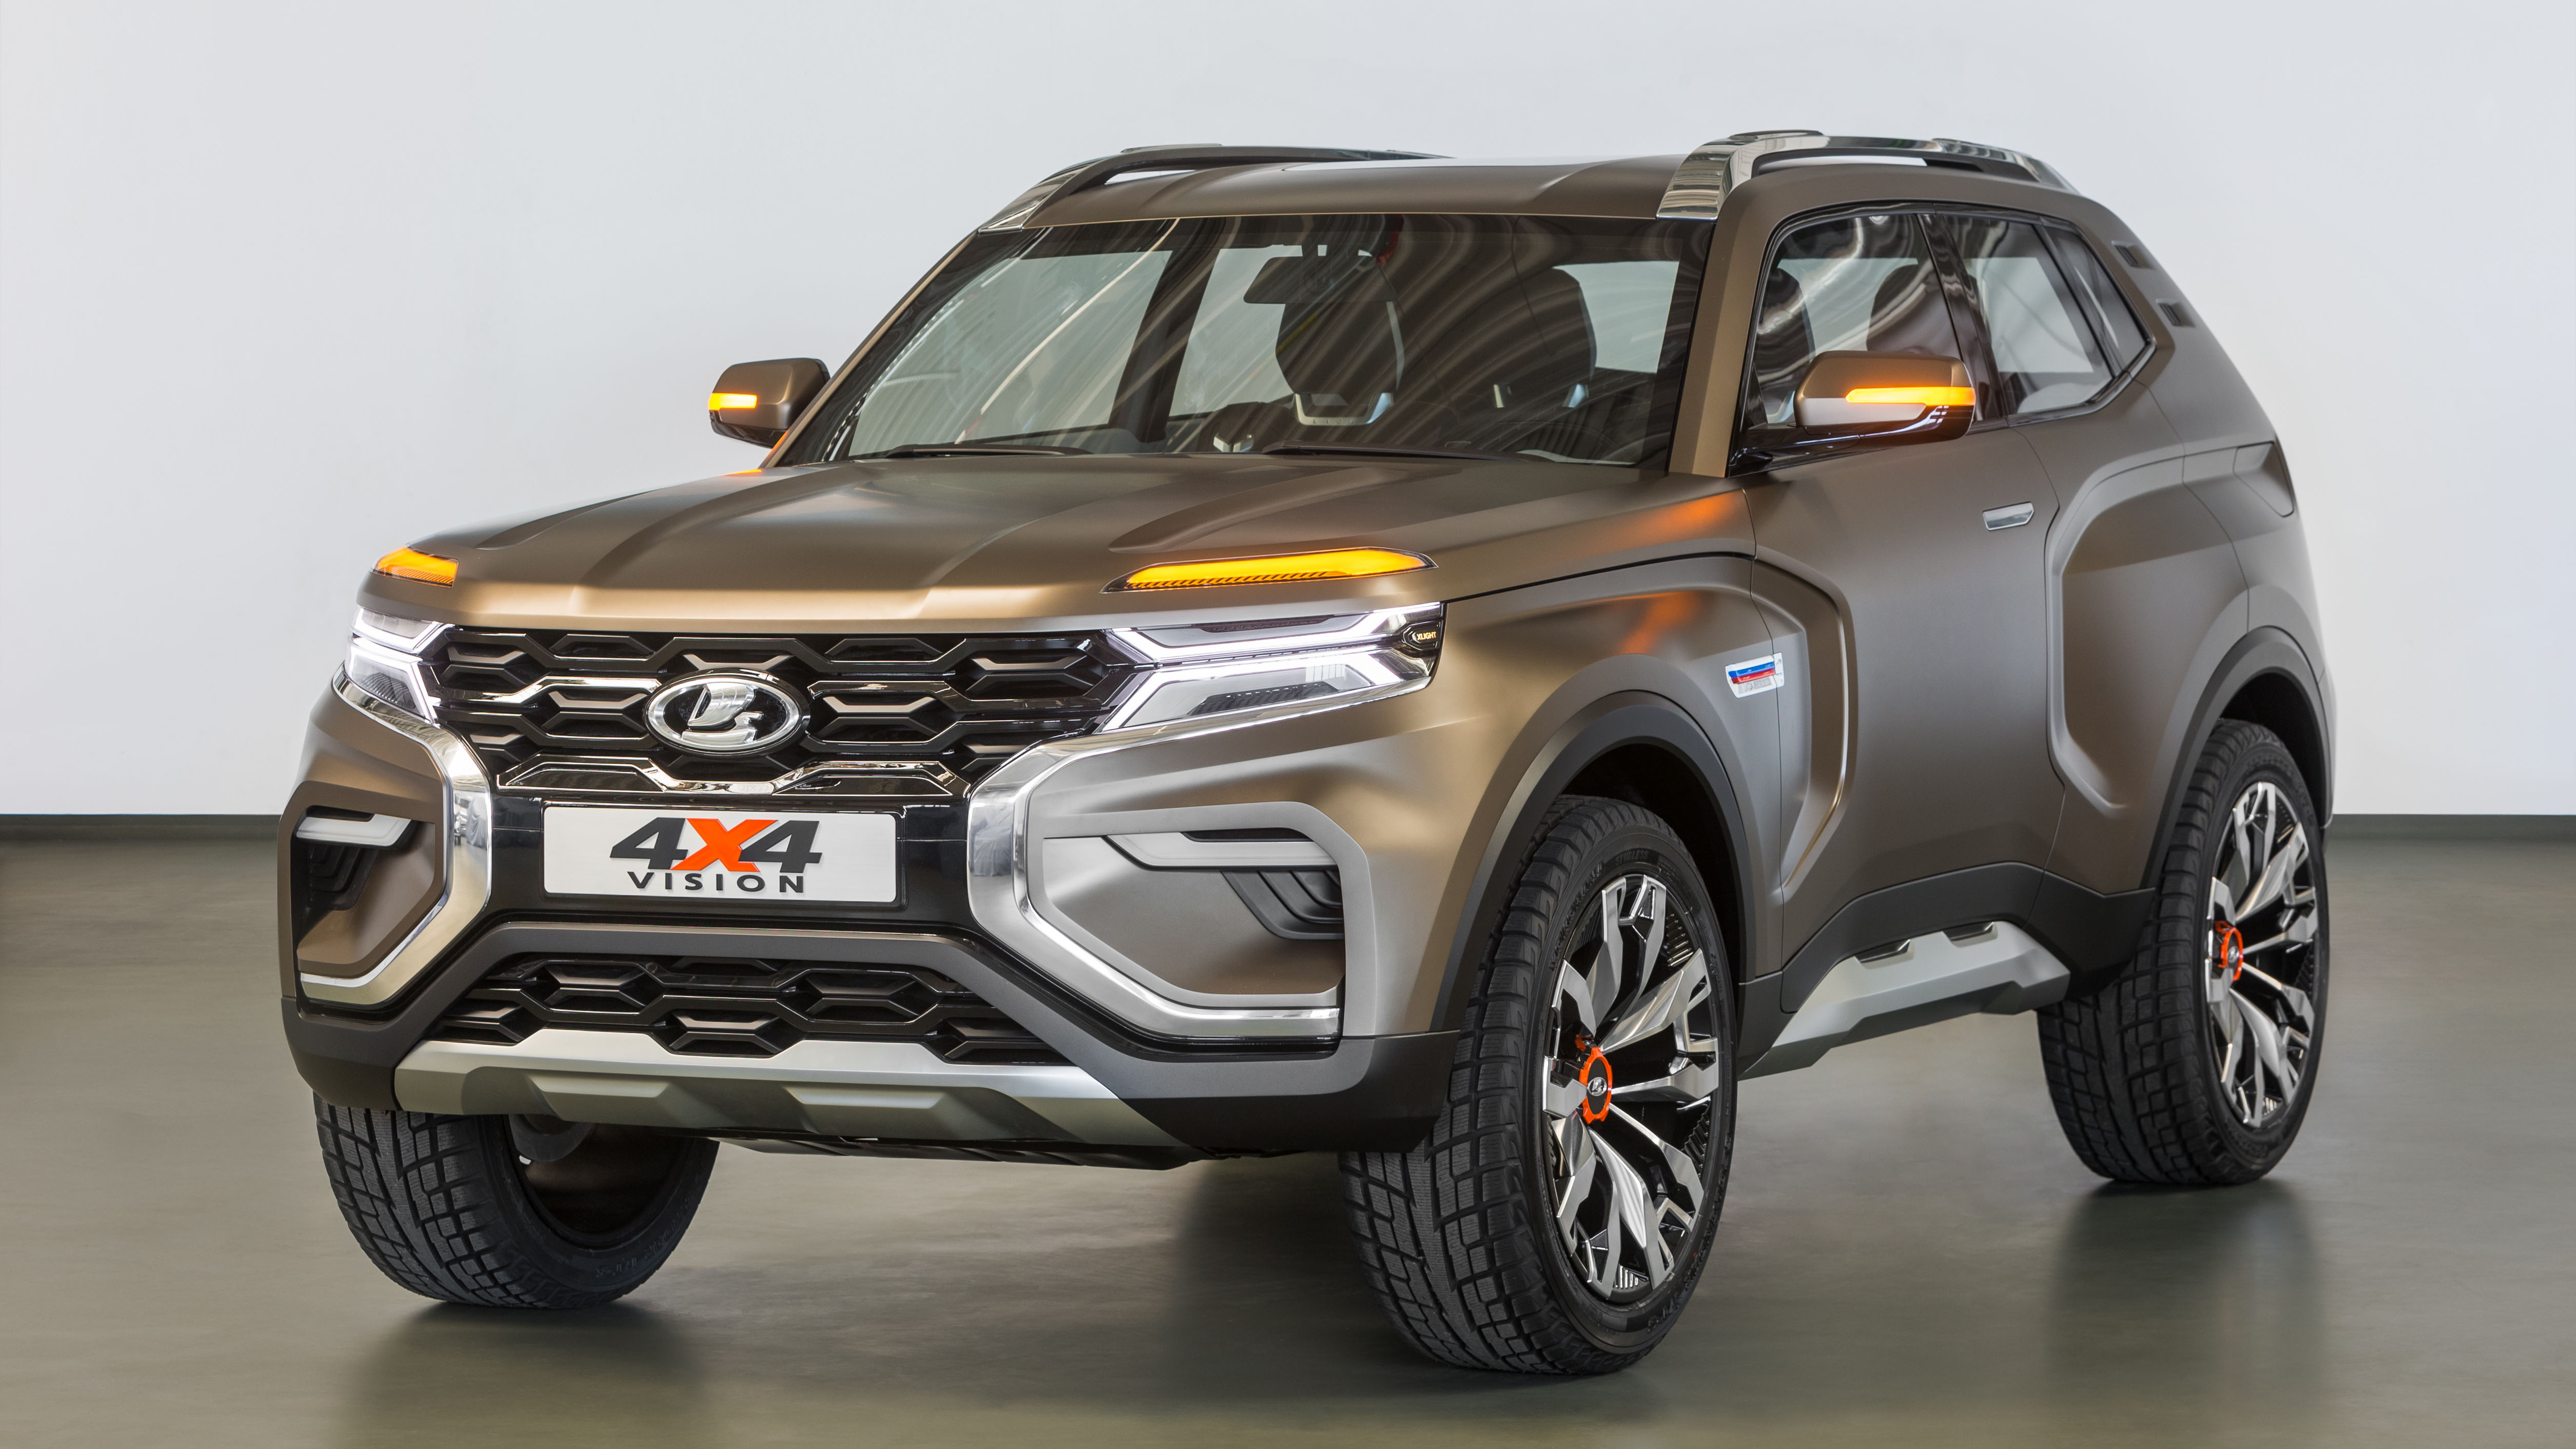 Lada 4x4 Vision Concept Unveiled Caradvice